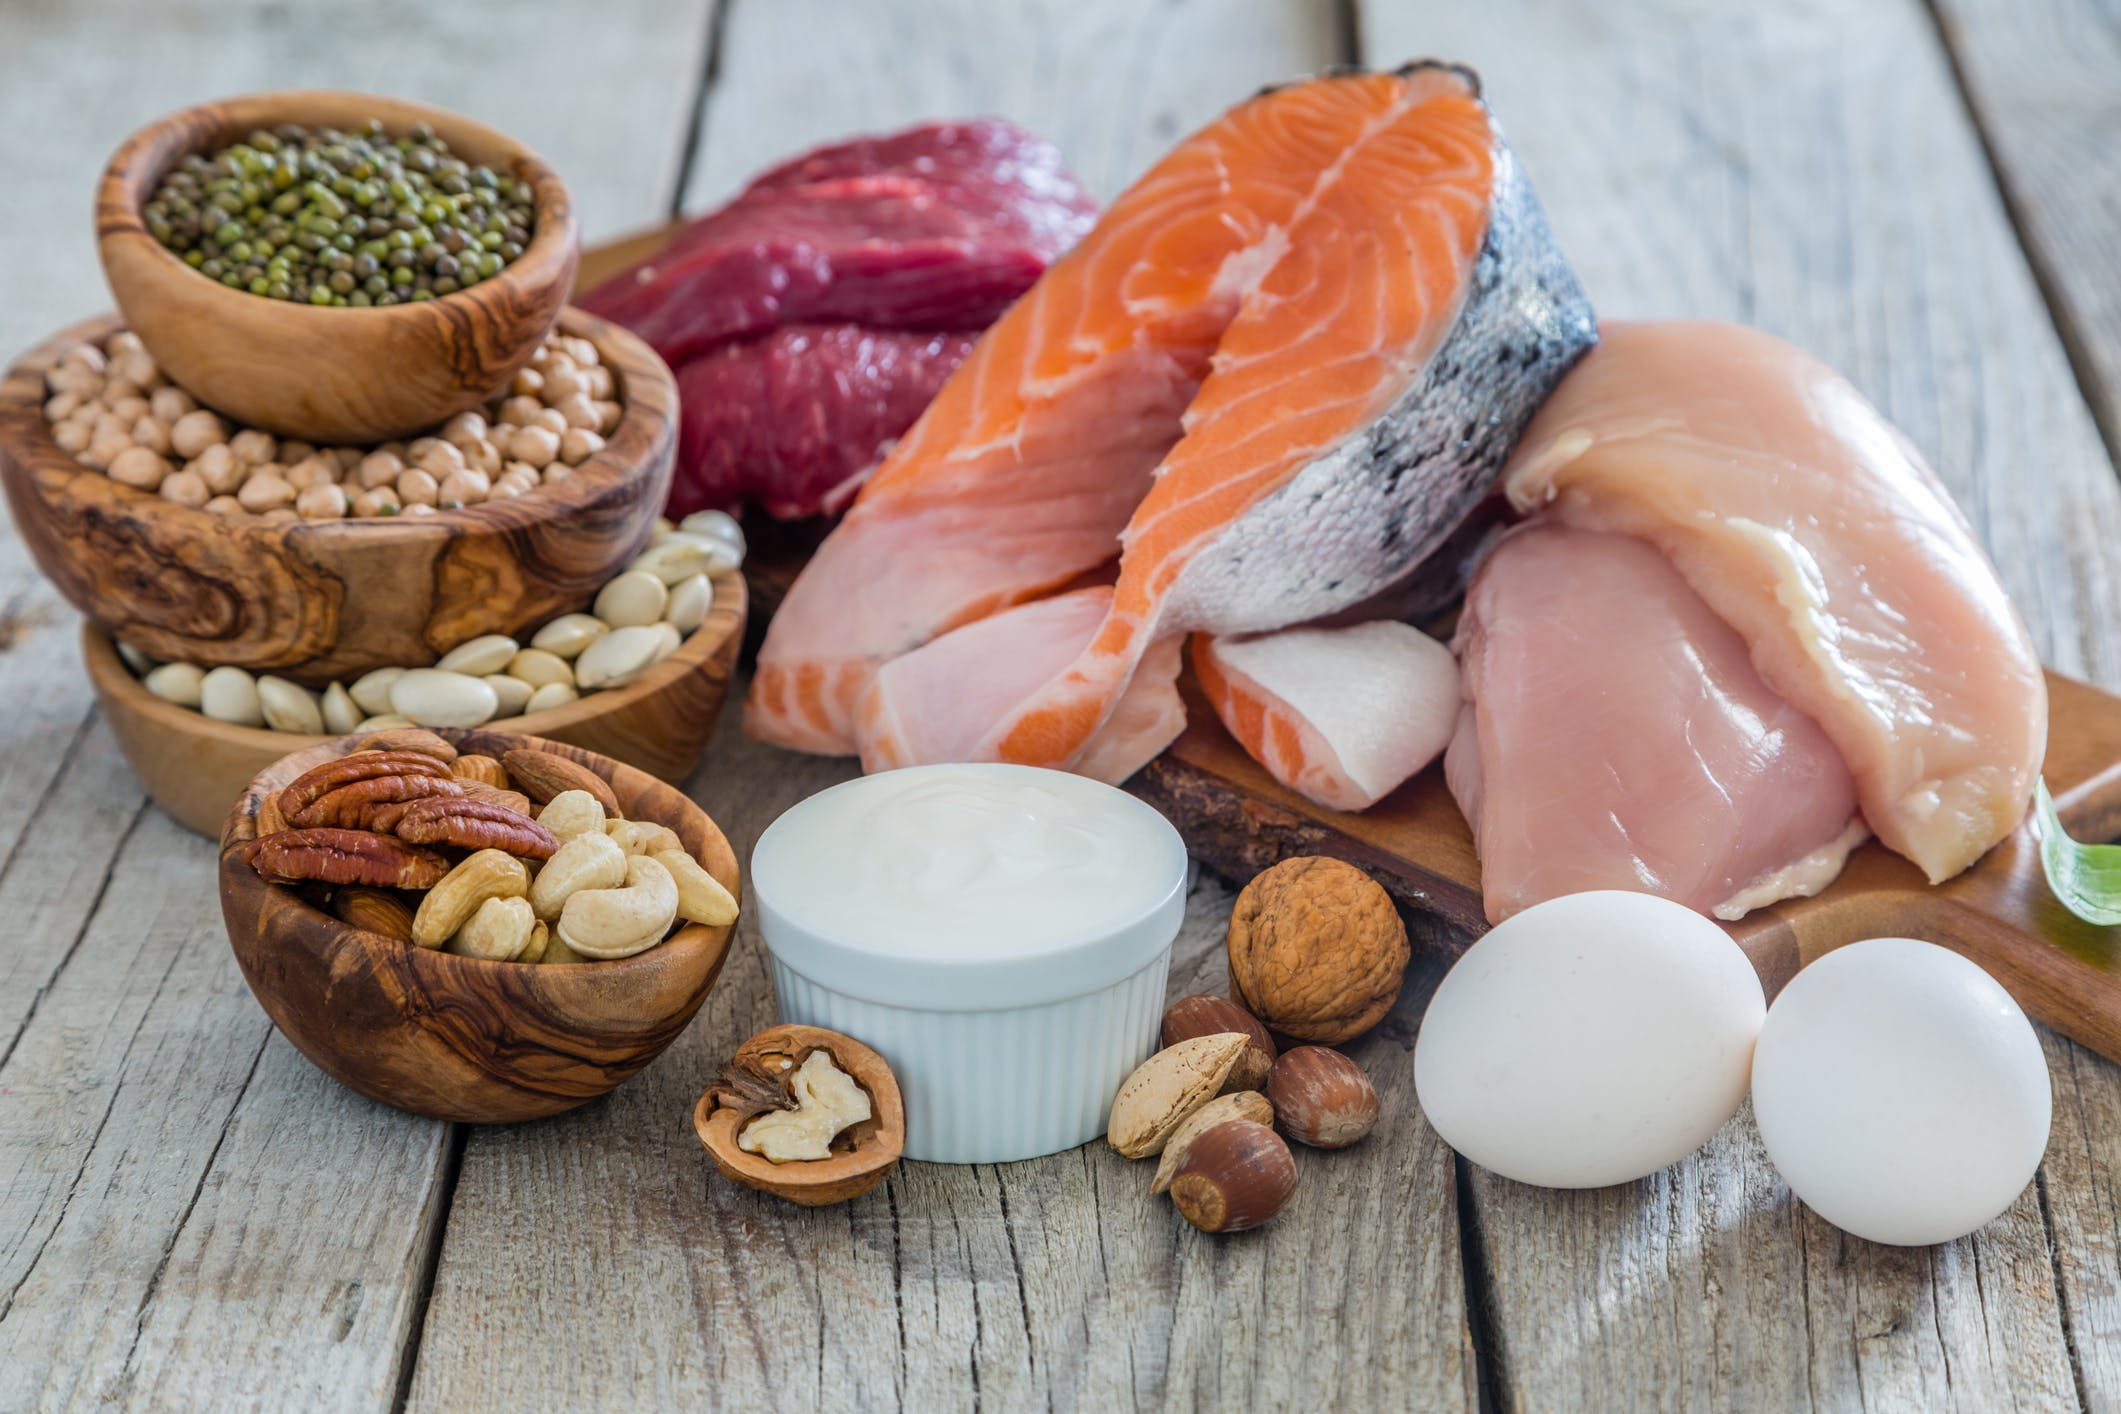 How much protein do you need on a keto diet?